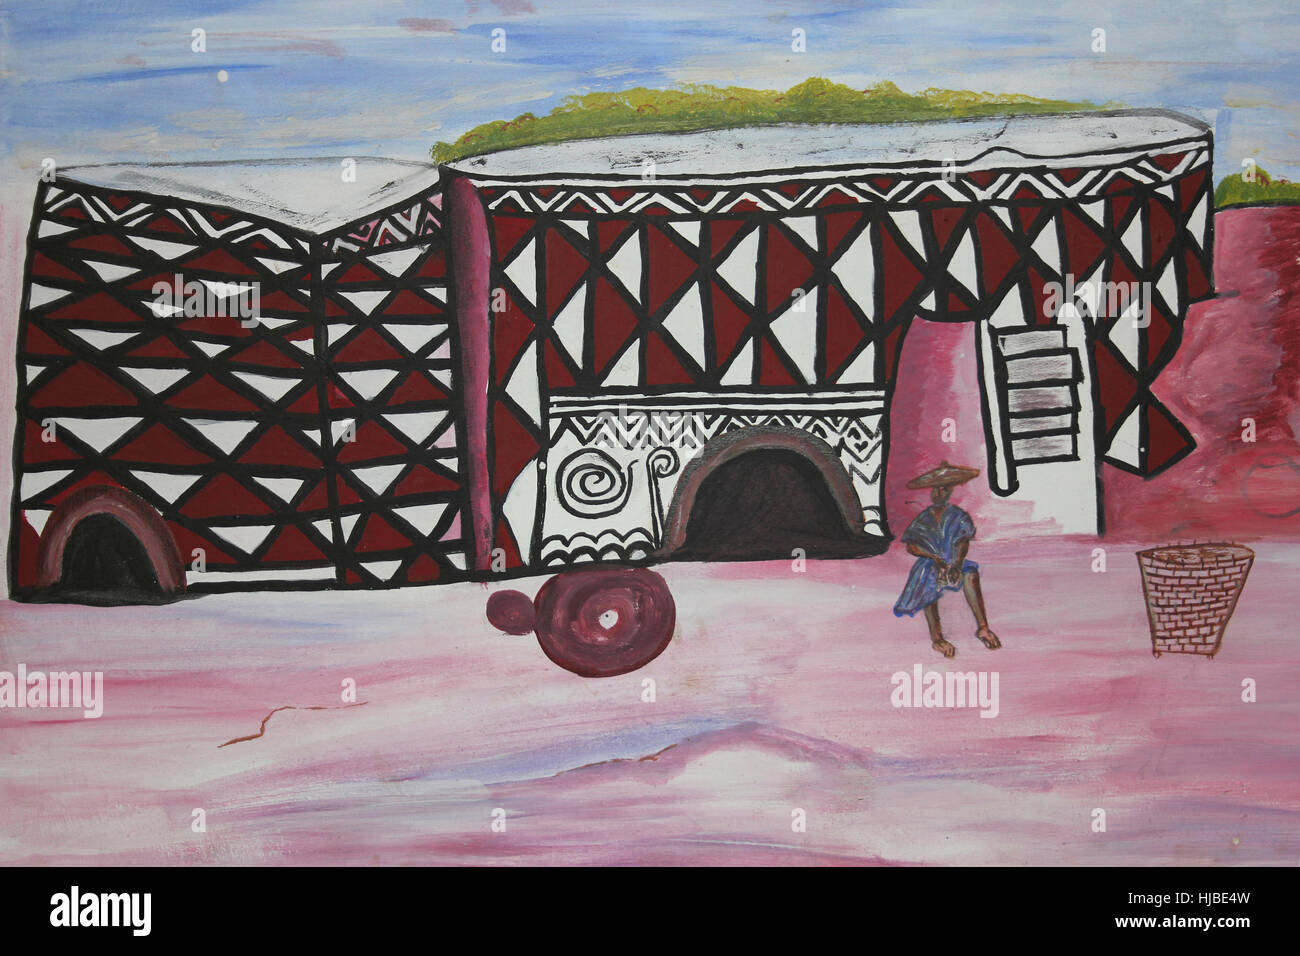 Painting Of A Traditionally Decorated Dwelling In Sirigu Village, Ghana - Stock Image